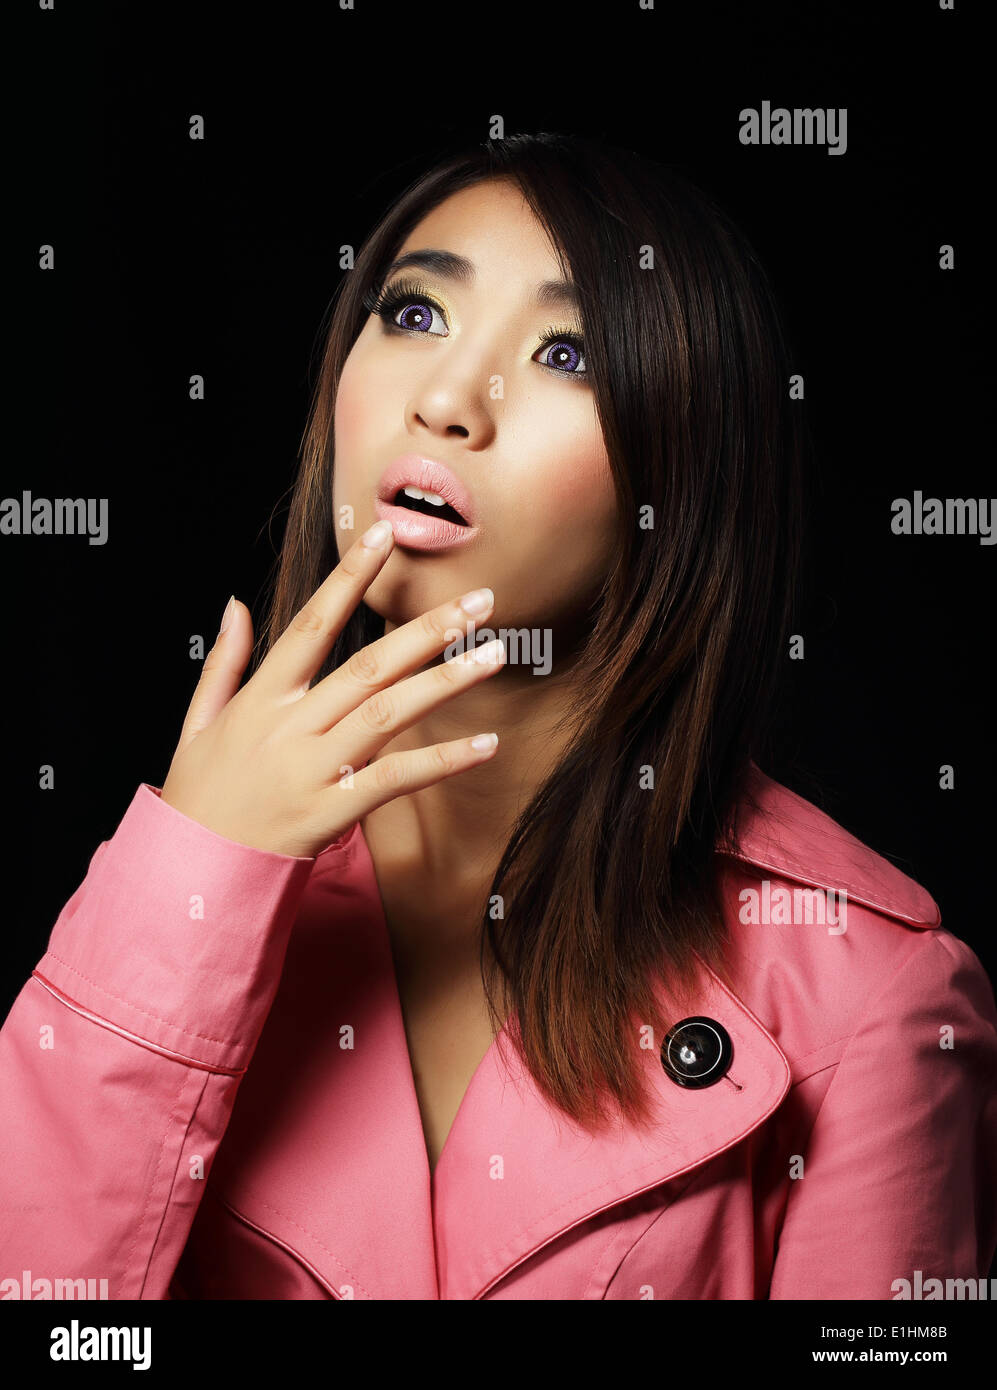 Amazement. Surprised Asian Woman Looking Up - Stock Image